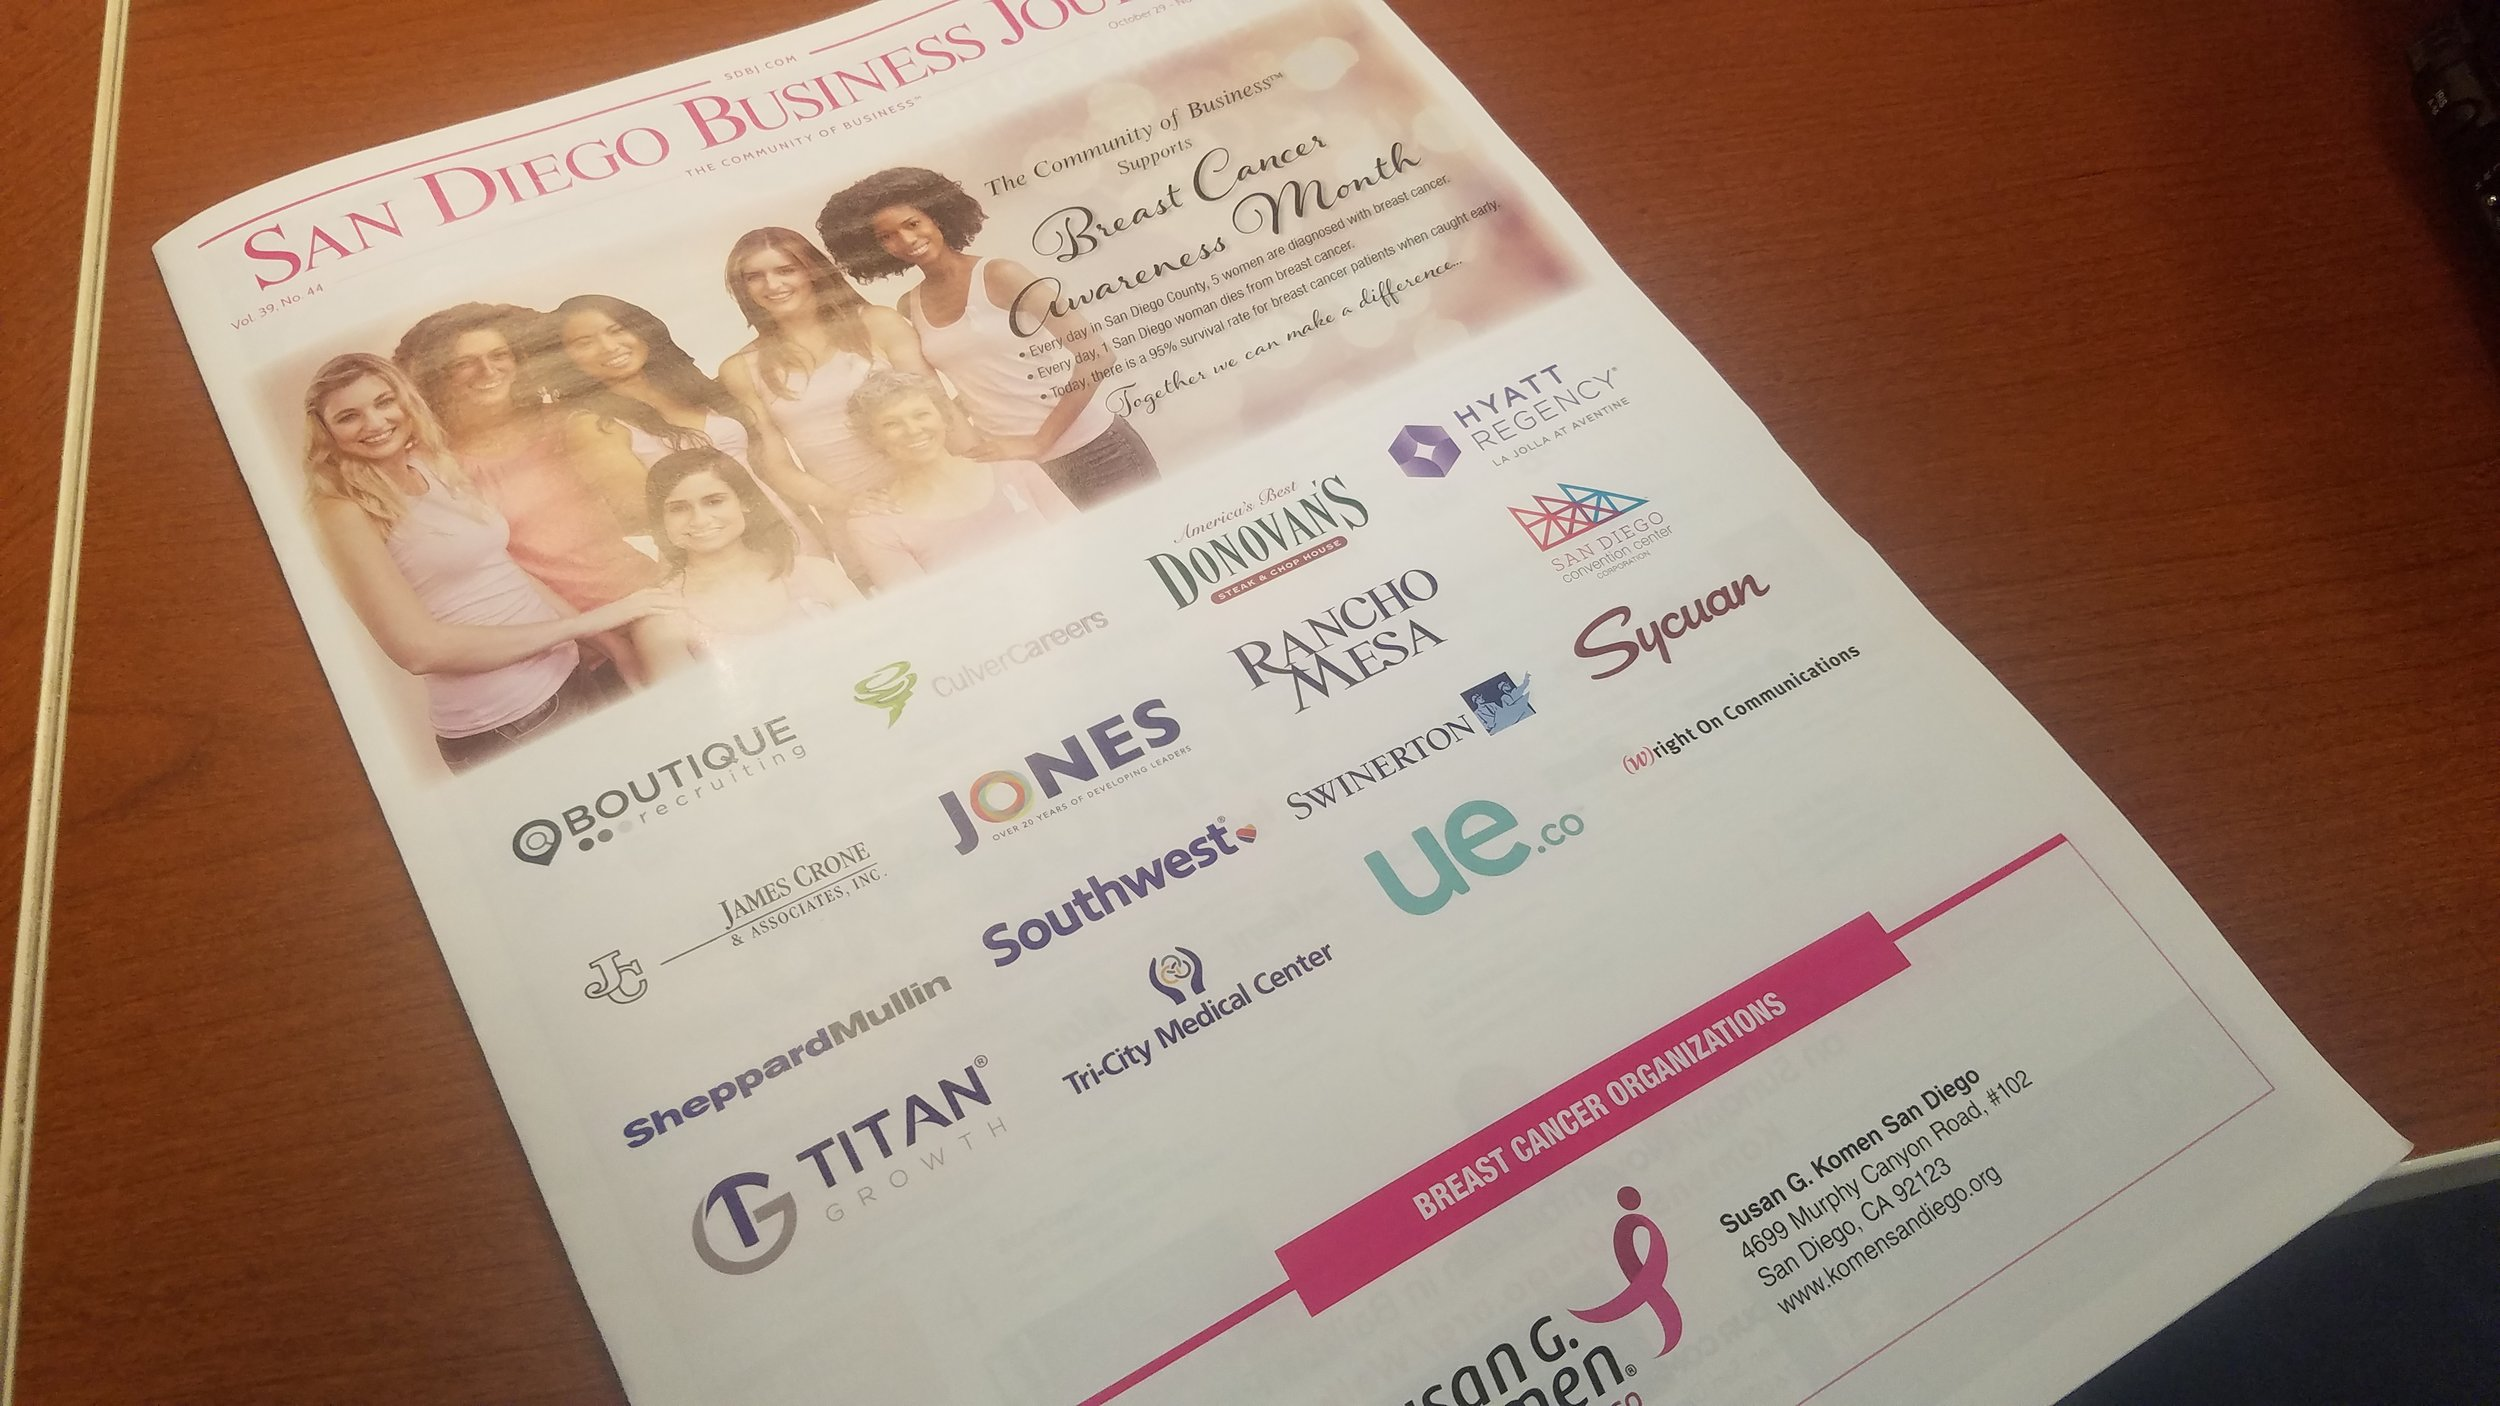 Cover of October 29, 2018 - November 4, 2018 San Diego Business Journal showing women in pick with logos of companies that support breast cancer awareness.